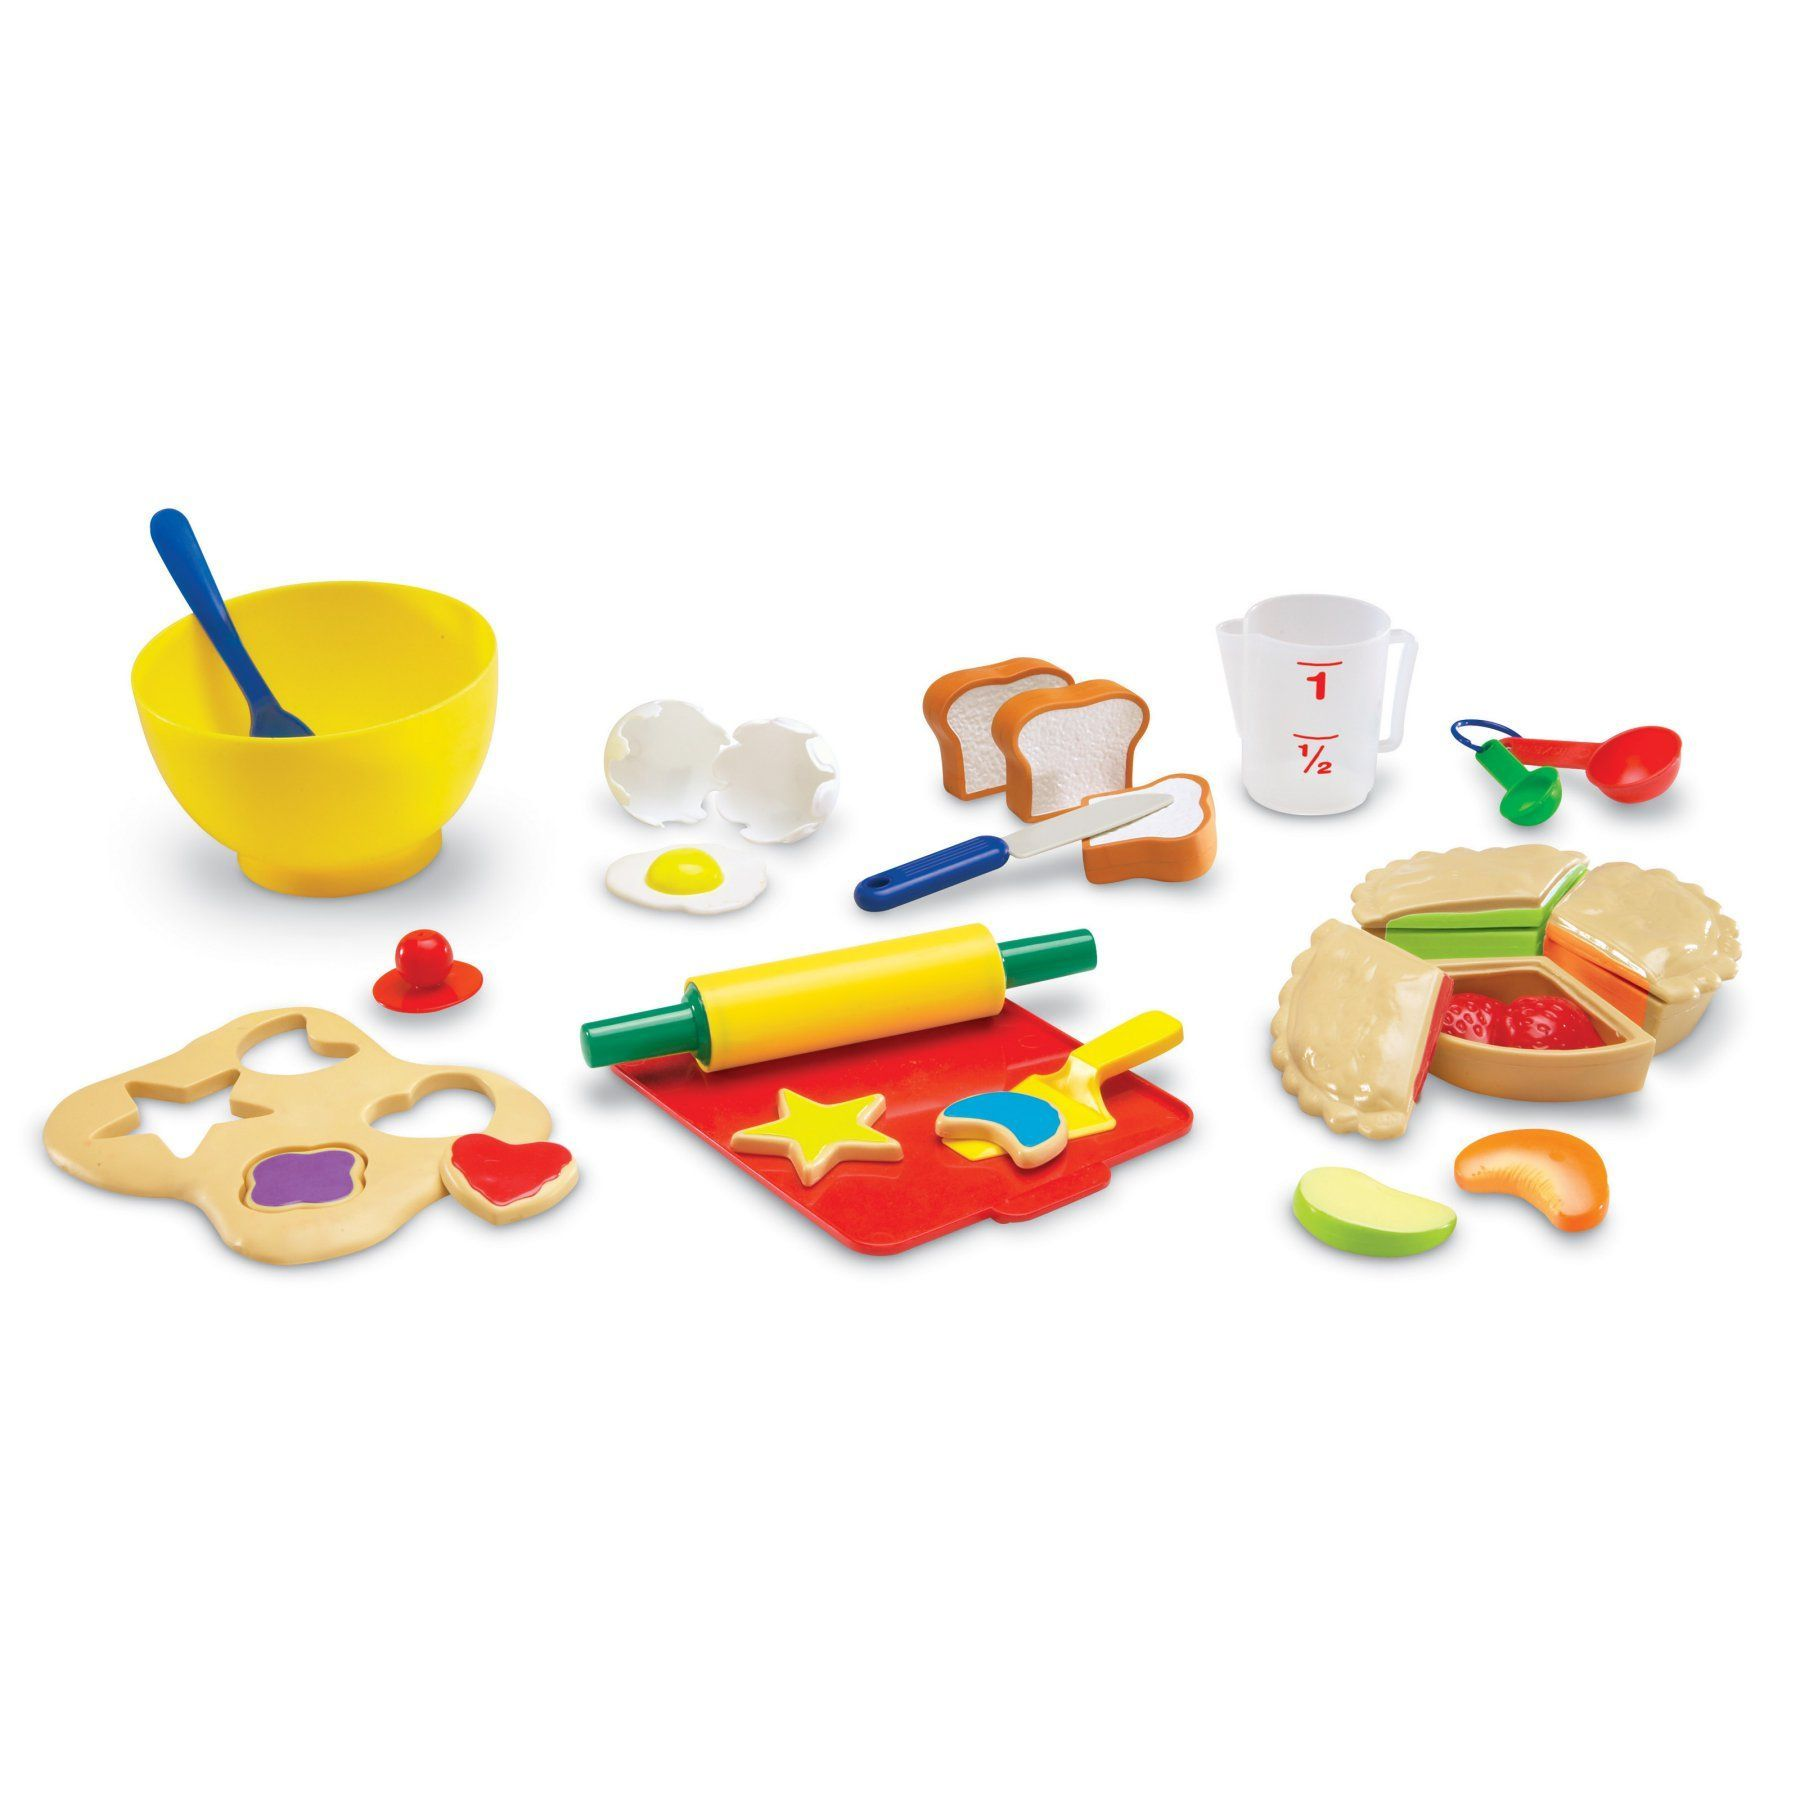 Kids toys images  Learning Resources Pretend u Play Bakery Set  LER  Products